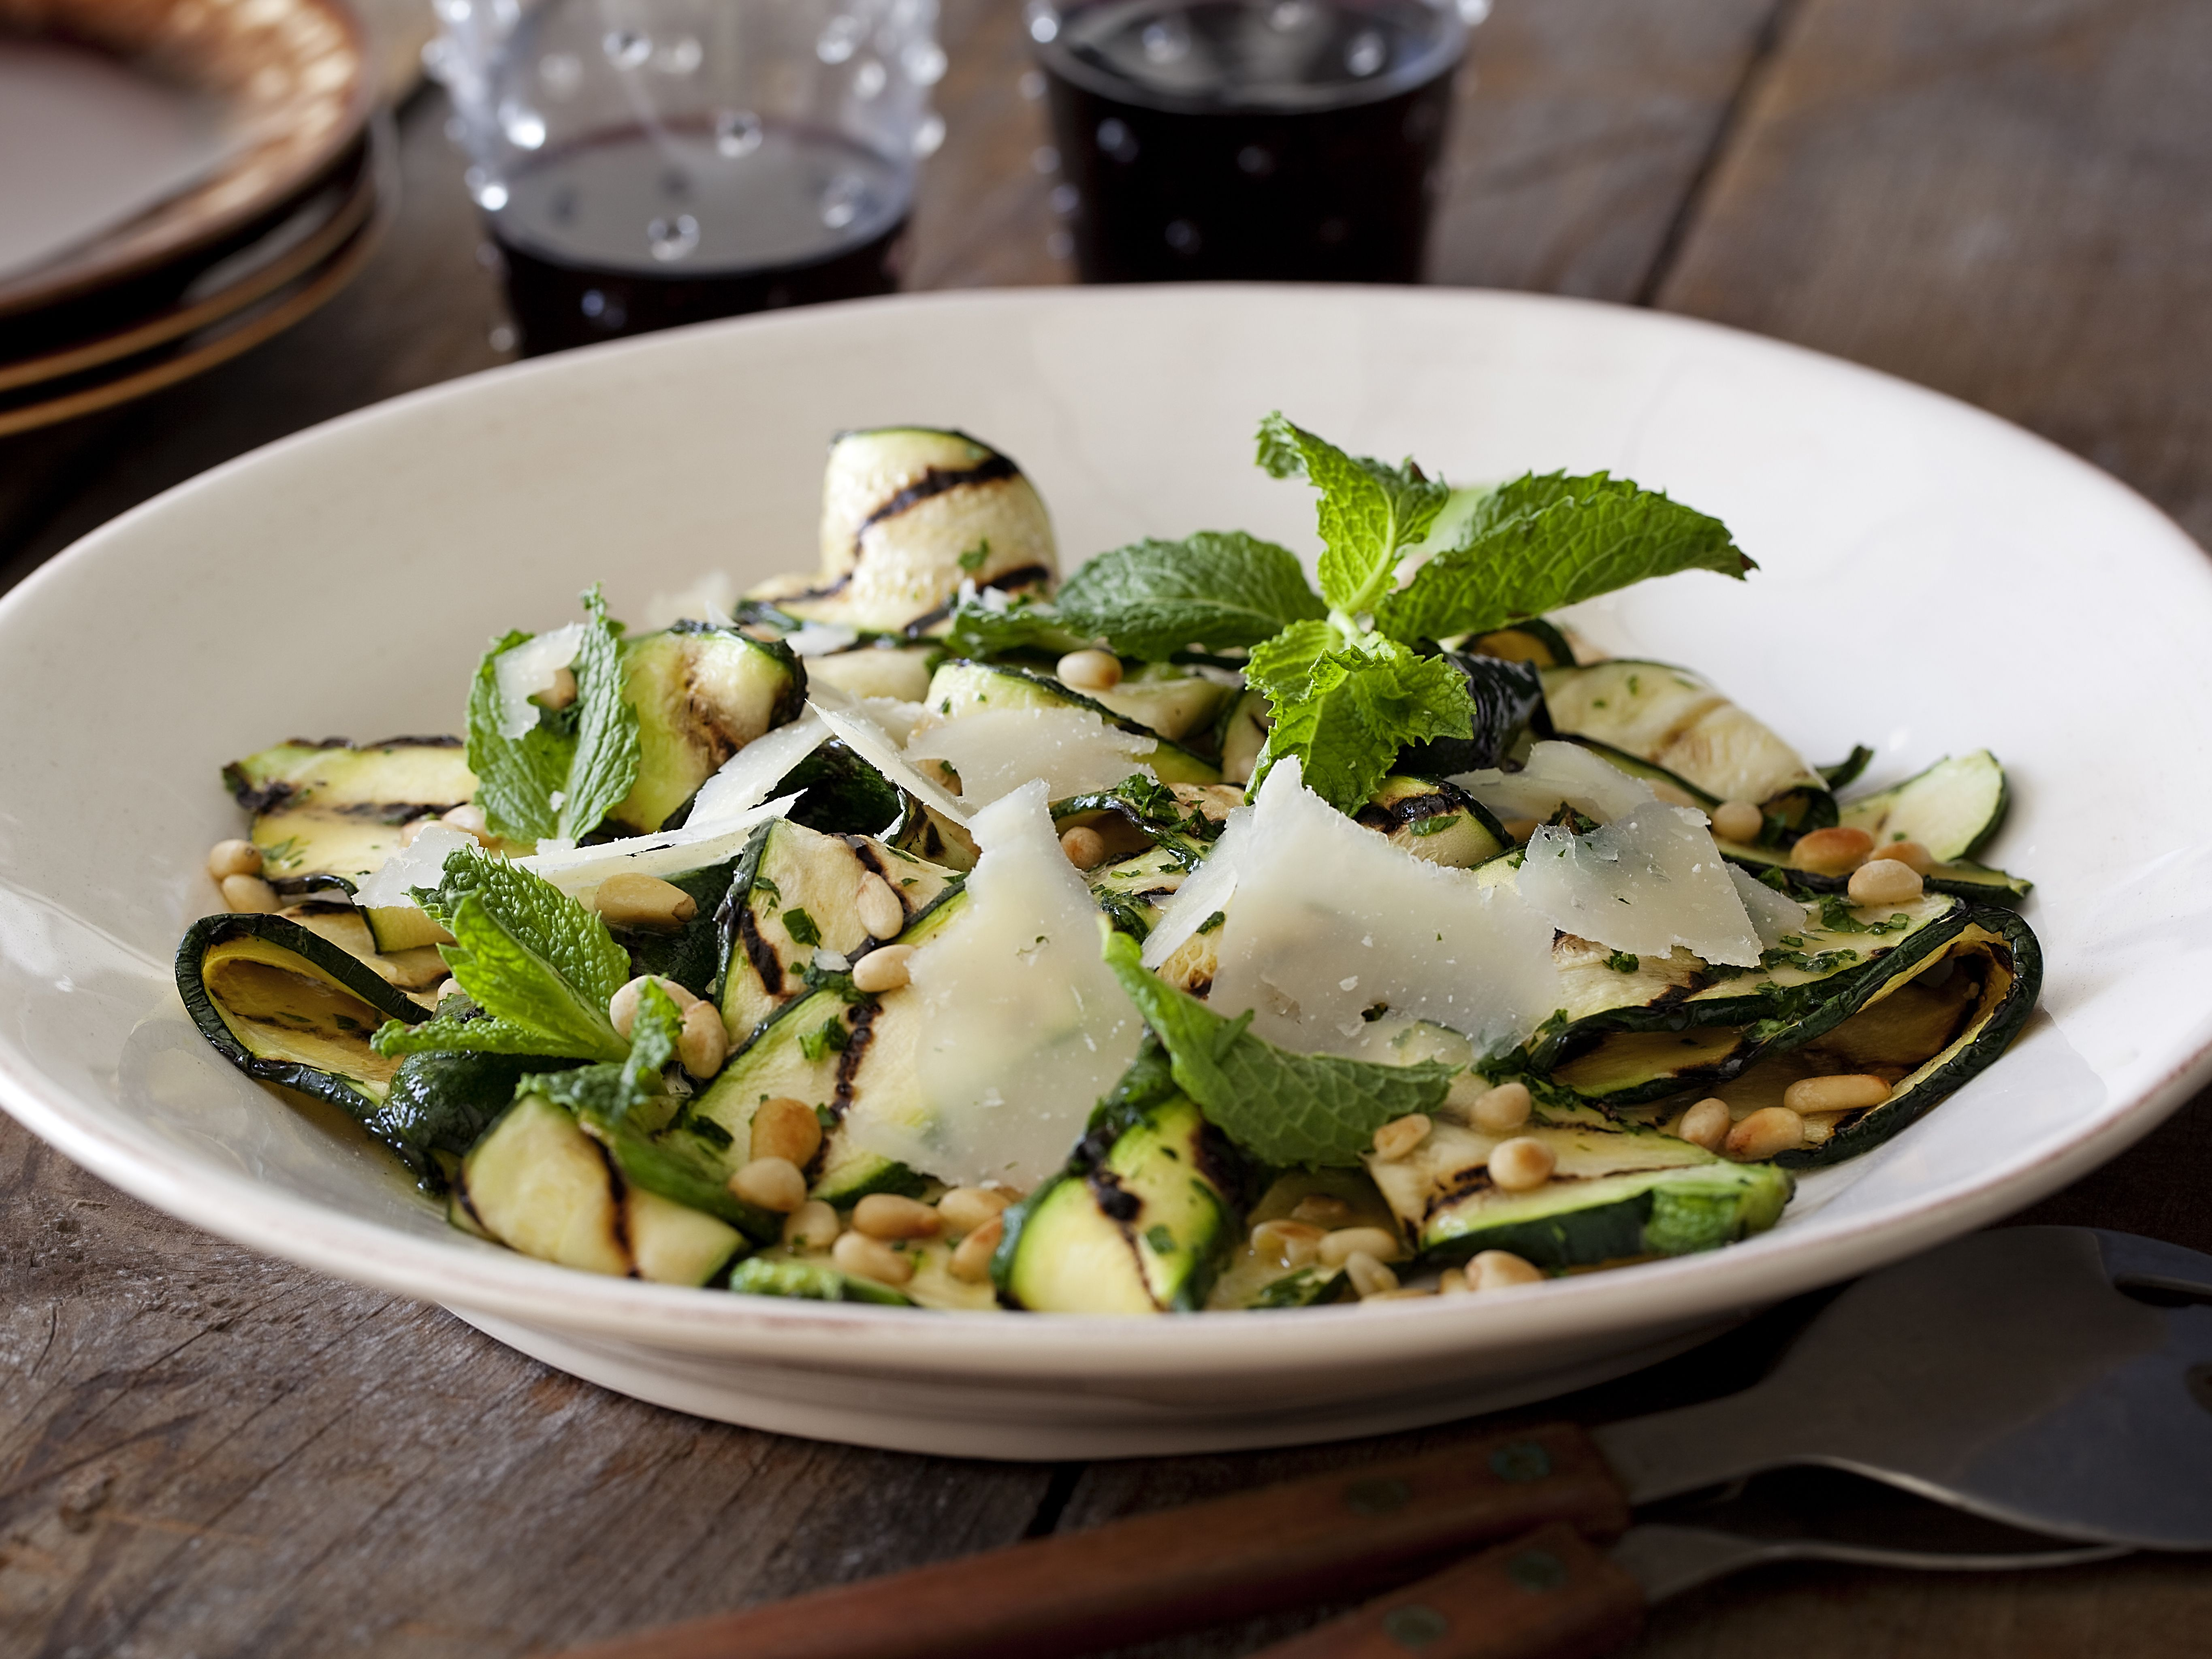 Grilled Zucchini Salad with Lemon-Herb Vinaigrette and Shaved Romano and Toasted Pine Nuts from FoodNetwork.com